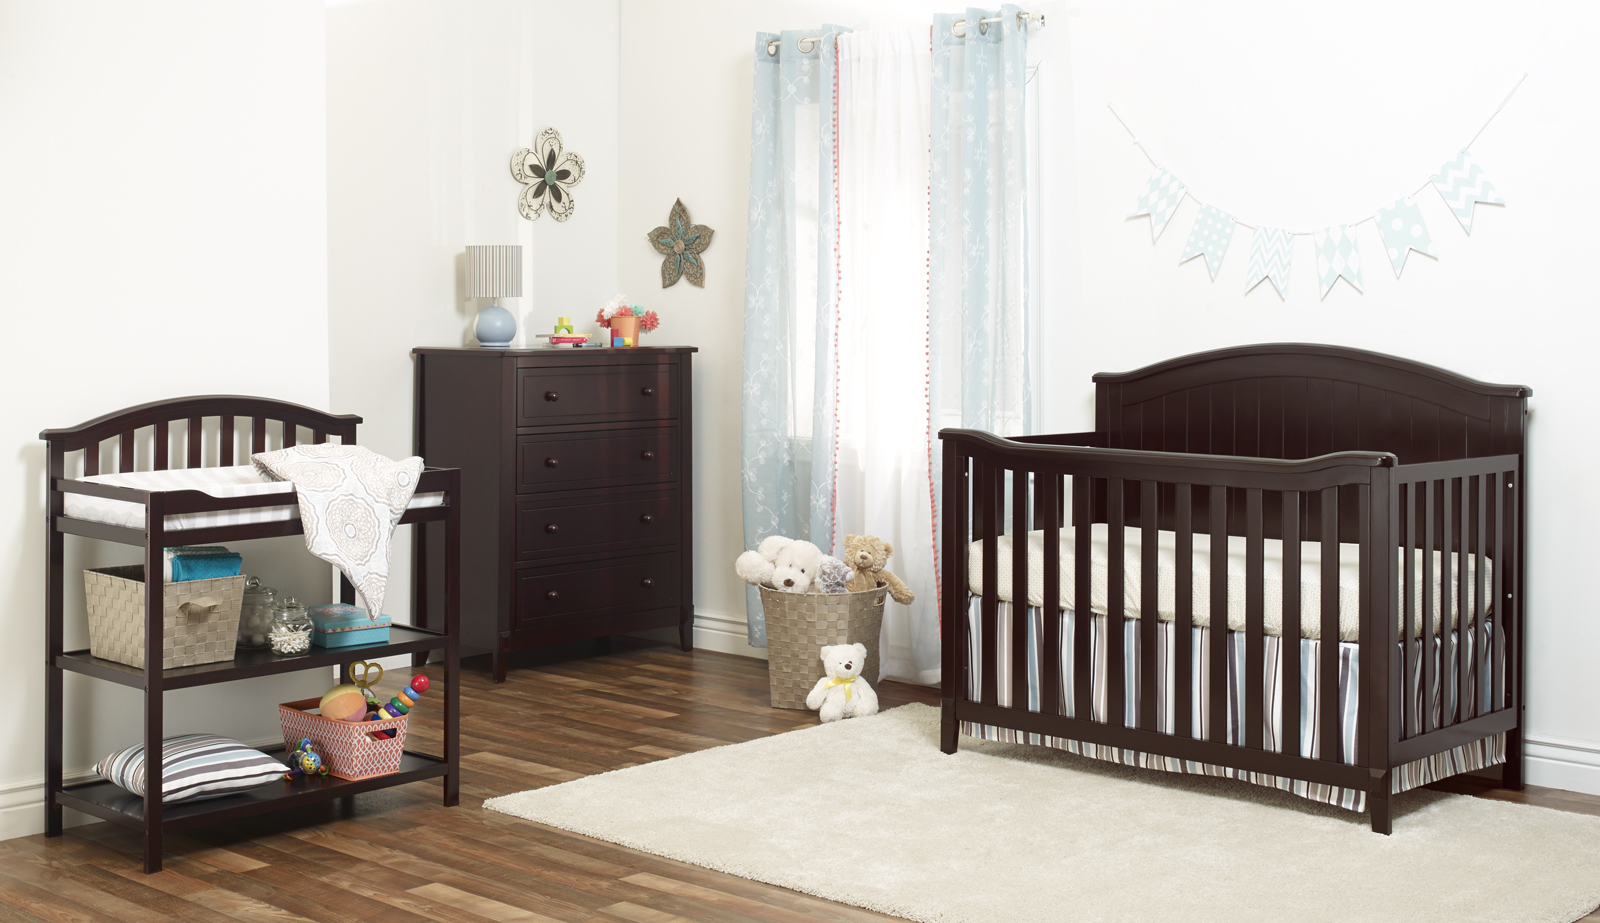 Sorelle Fairview 4 in 1 Convertible Crib, Grey by Sorelle Furniture